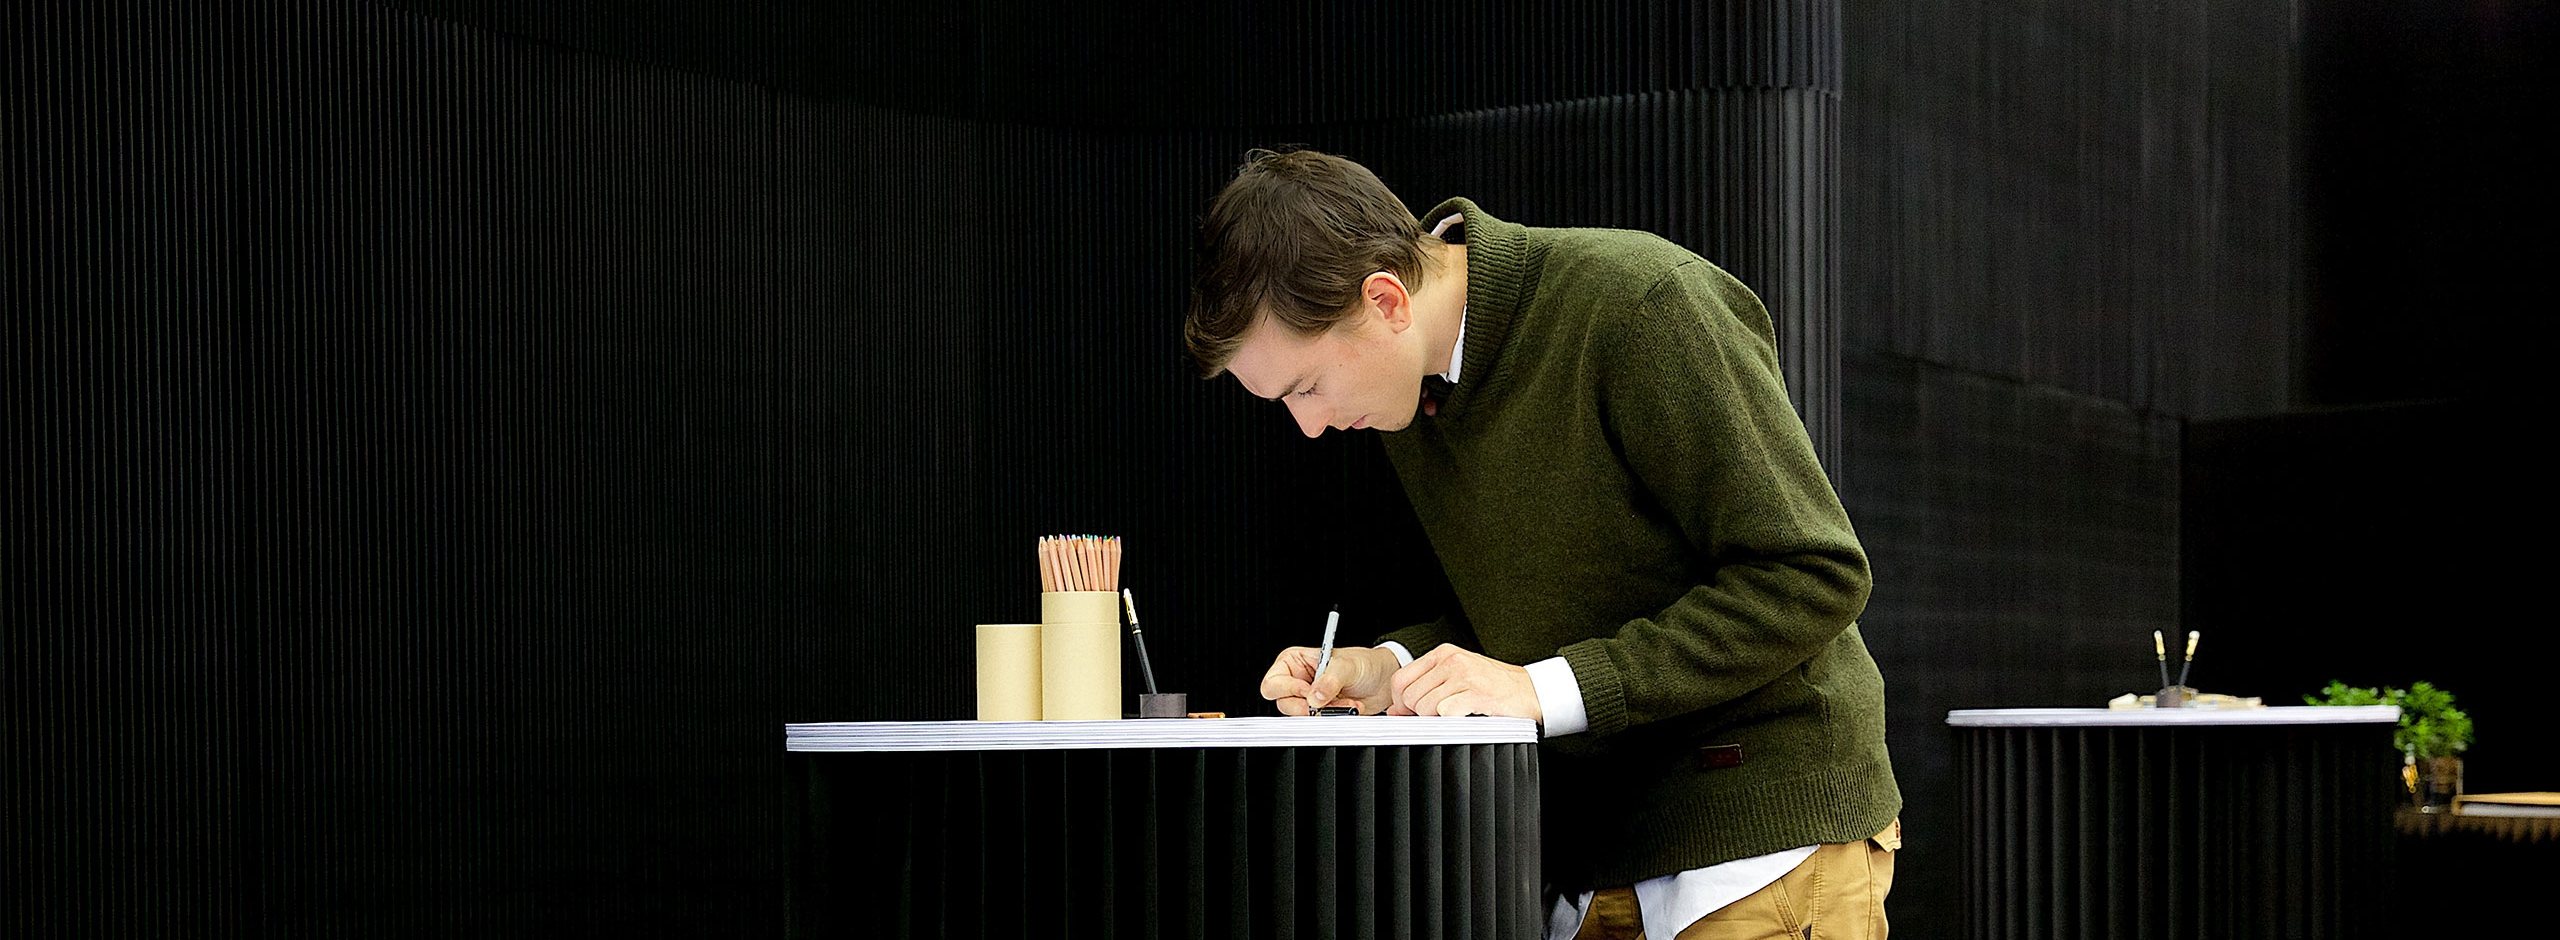 man draws on a sketching circle in front of a black thinwall